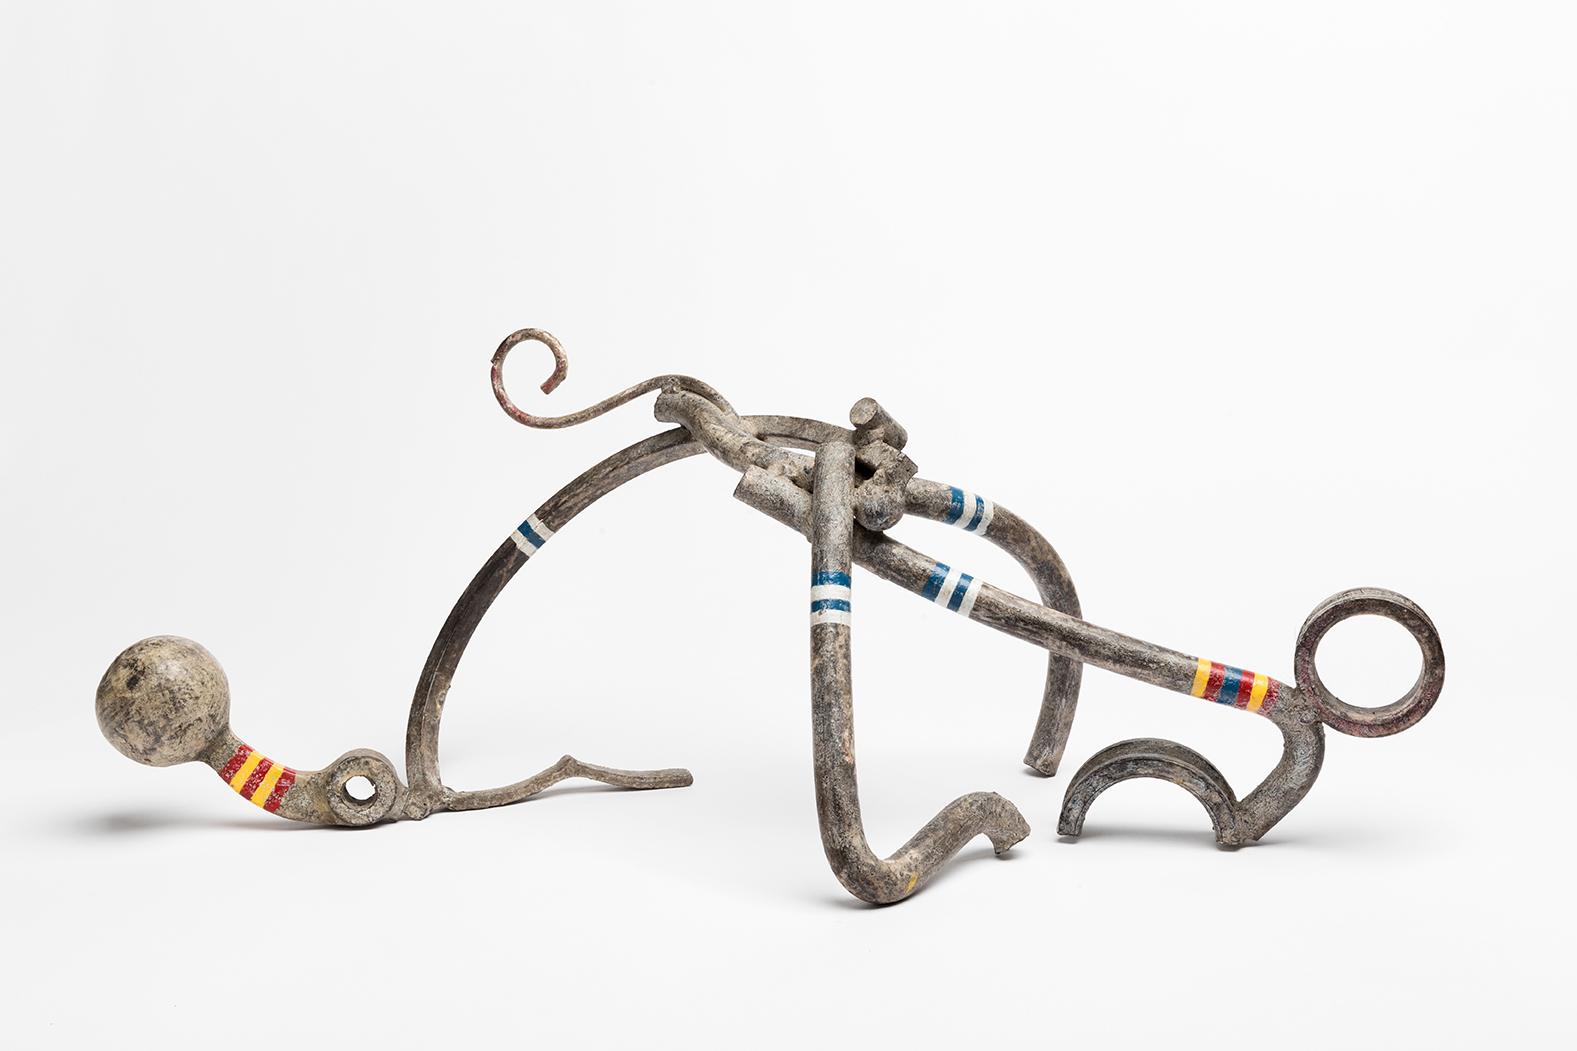 Lee Tribe,  The First Bather, Olga,  1997-2016, steel, formed, welded, paint and wax, 10 x 26 x 12""